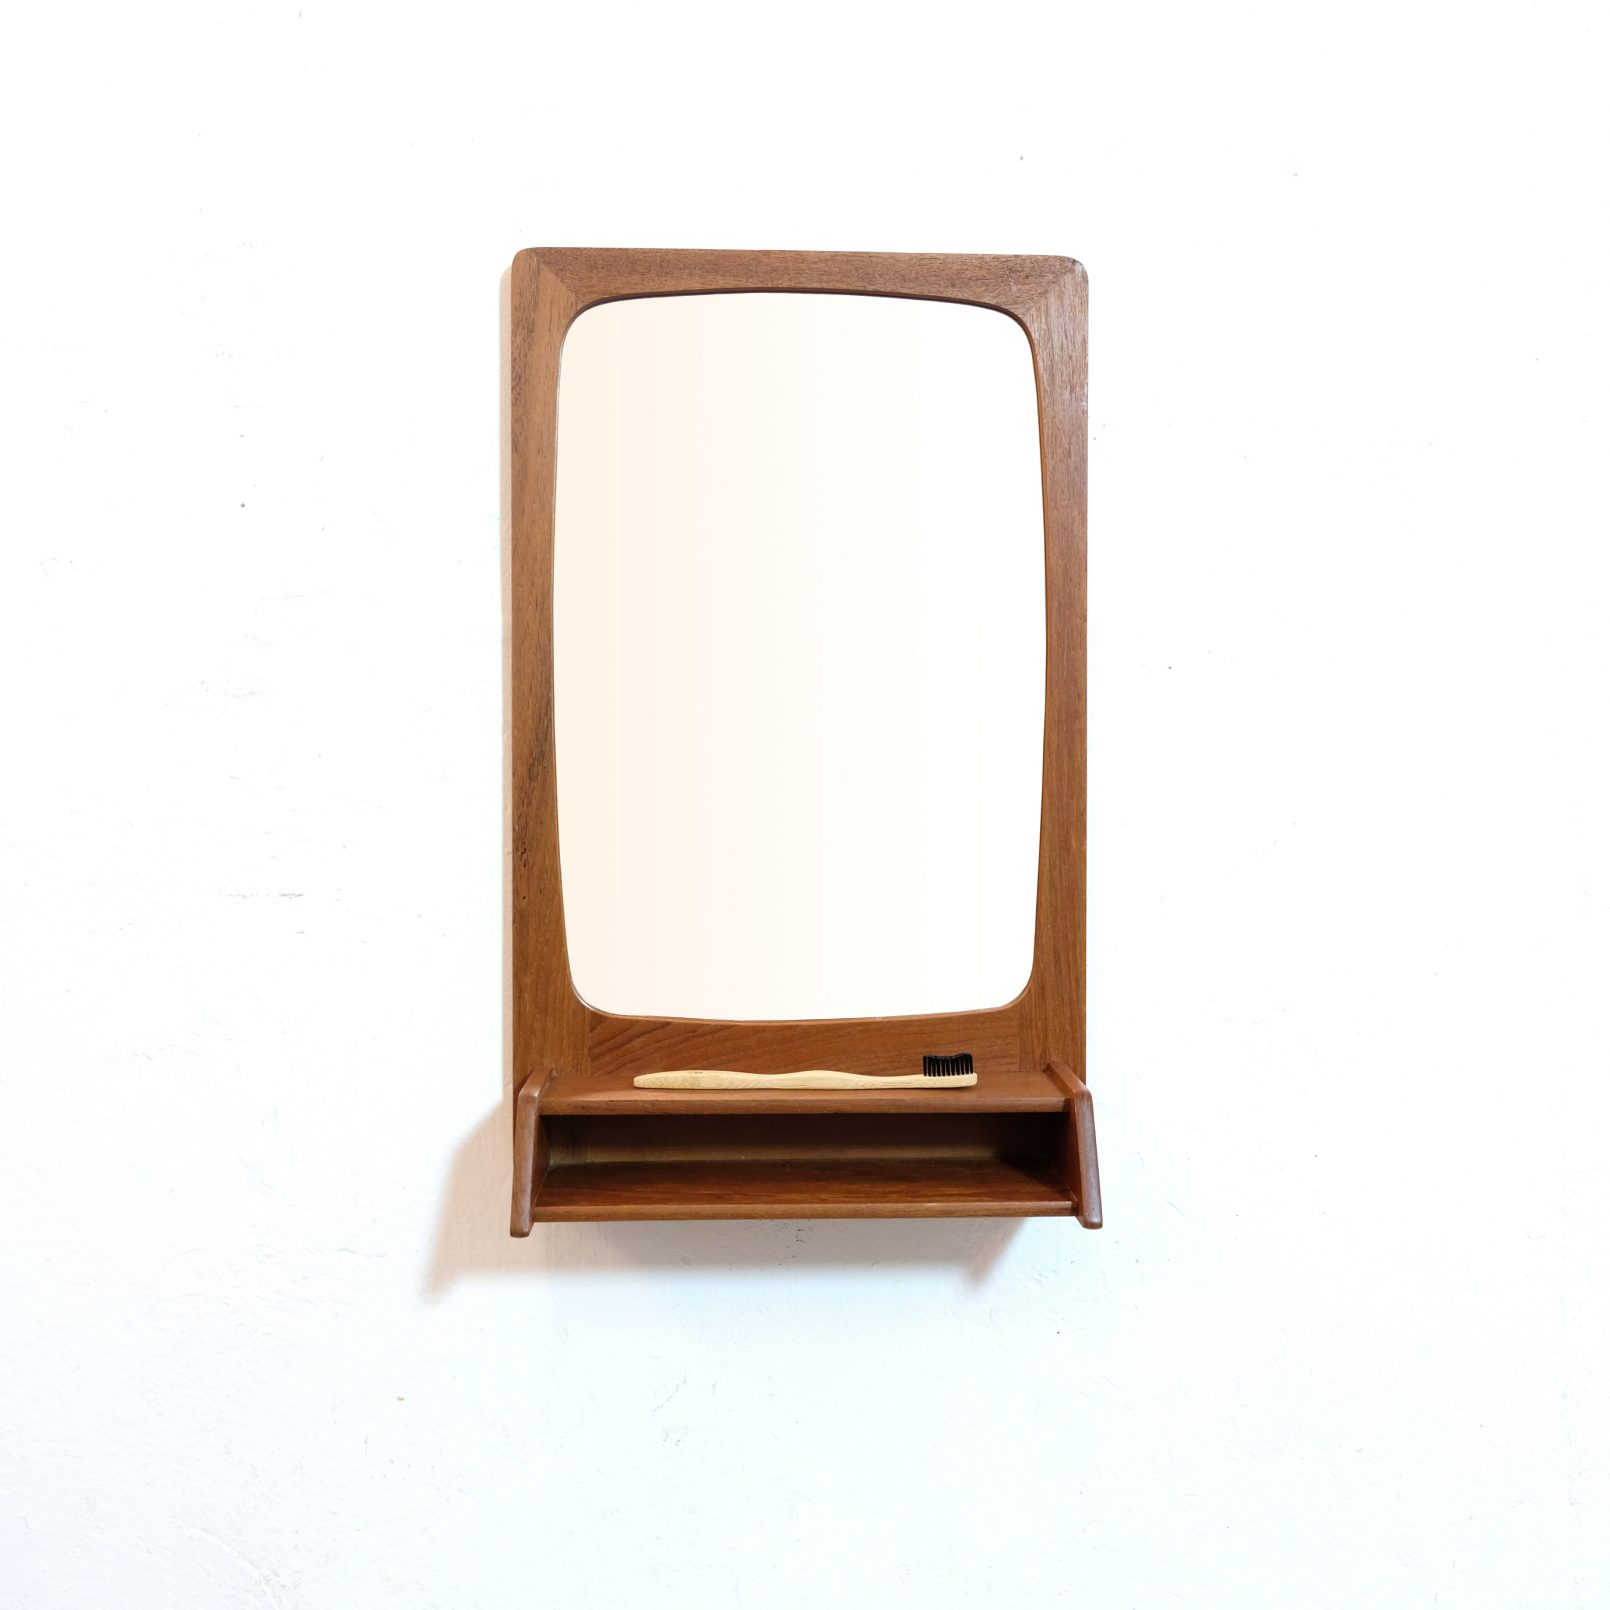 Scandinavian teak mirror with a shelf, 54x33 cm.